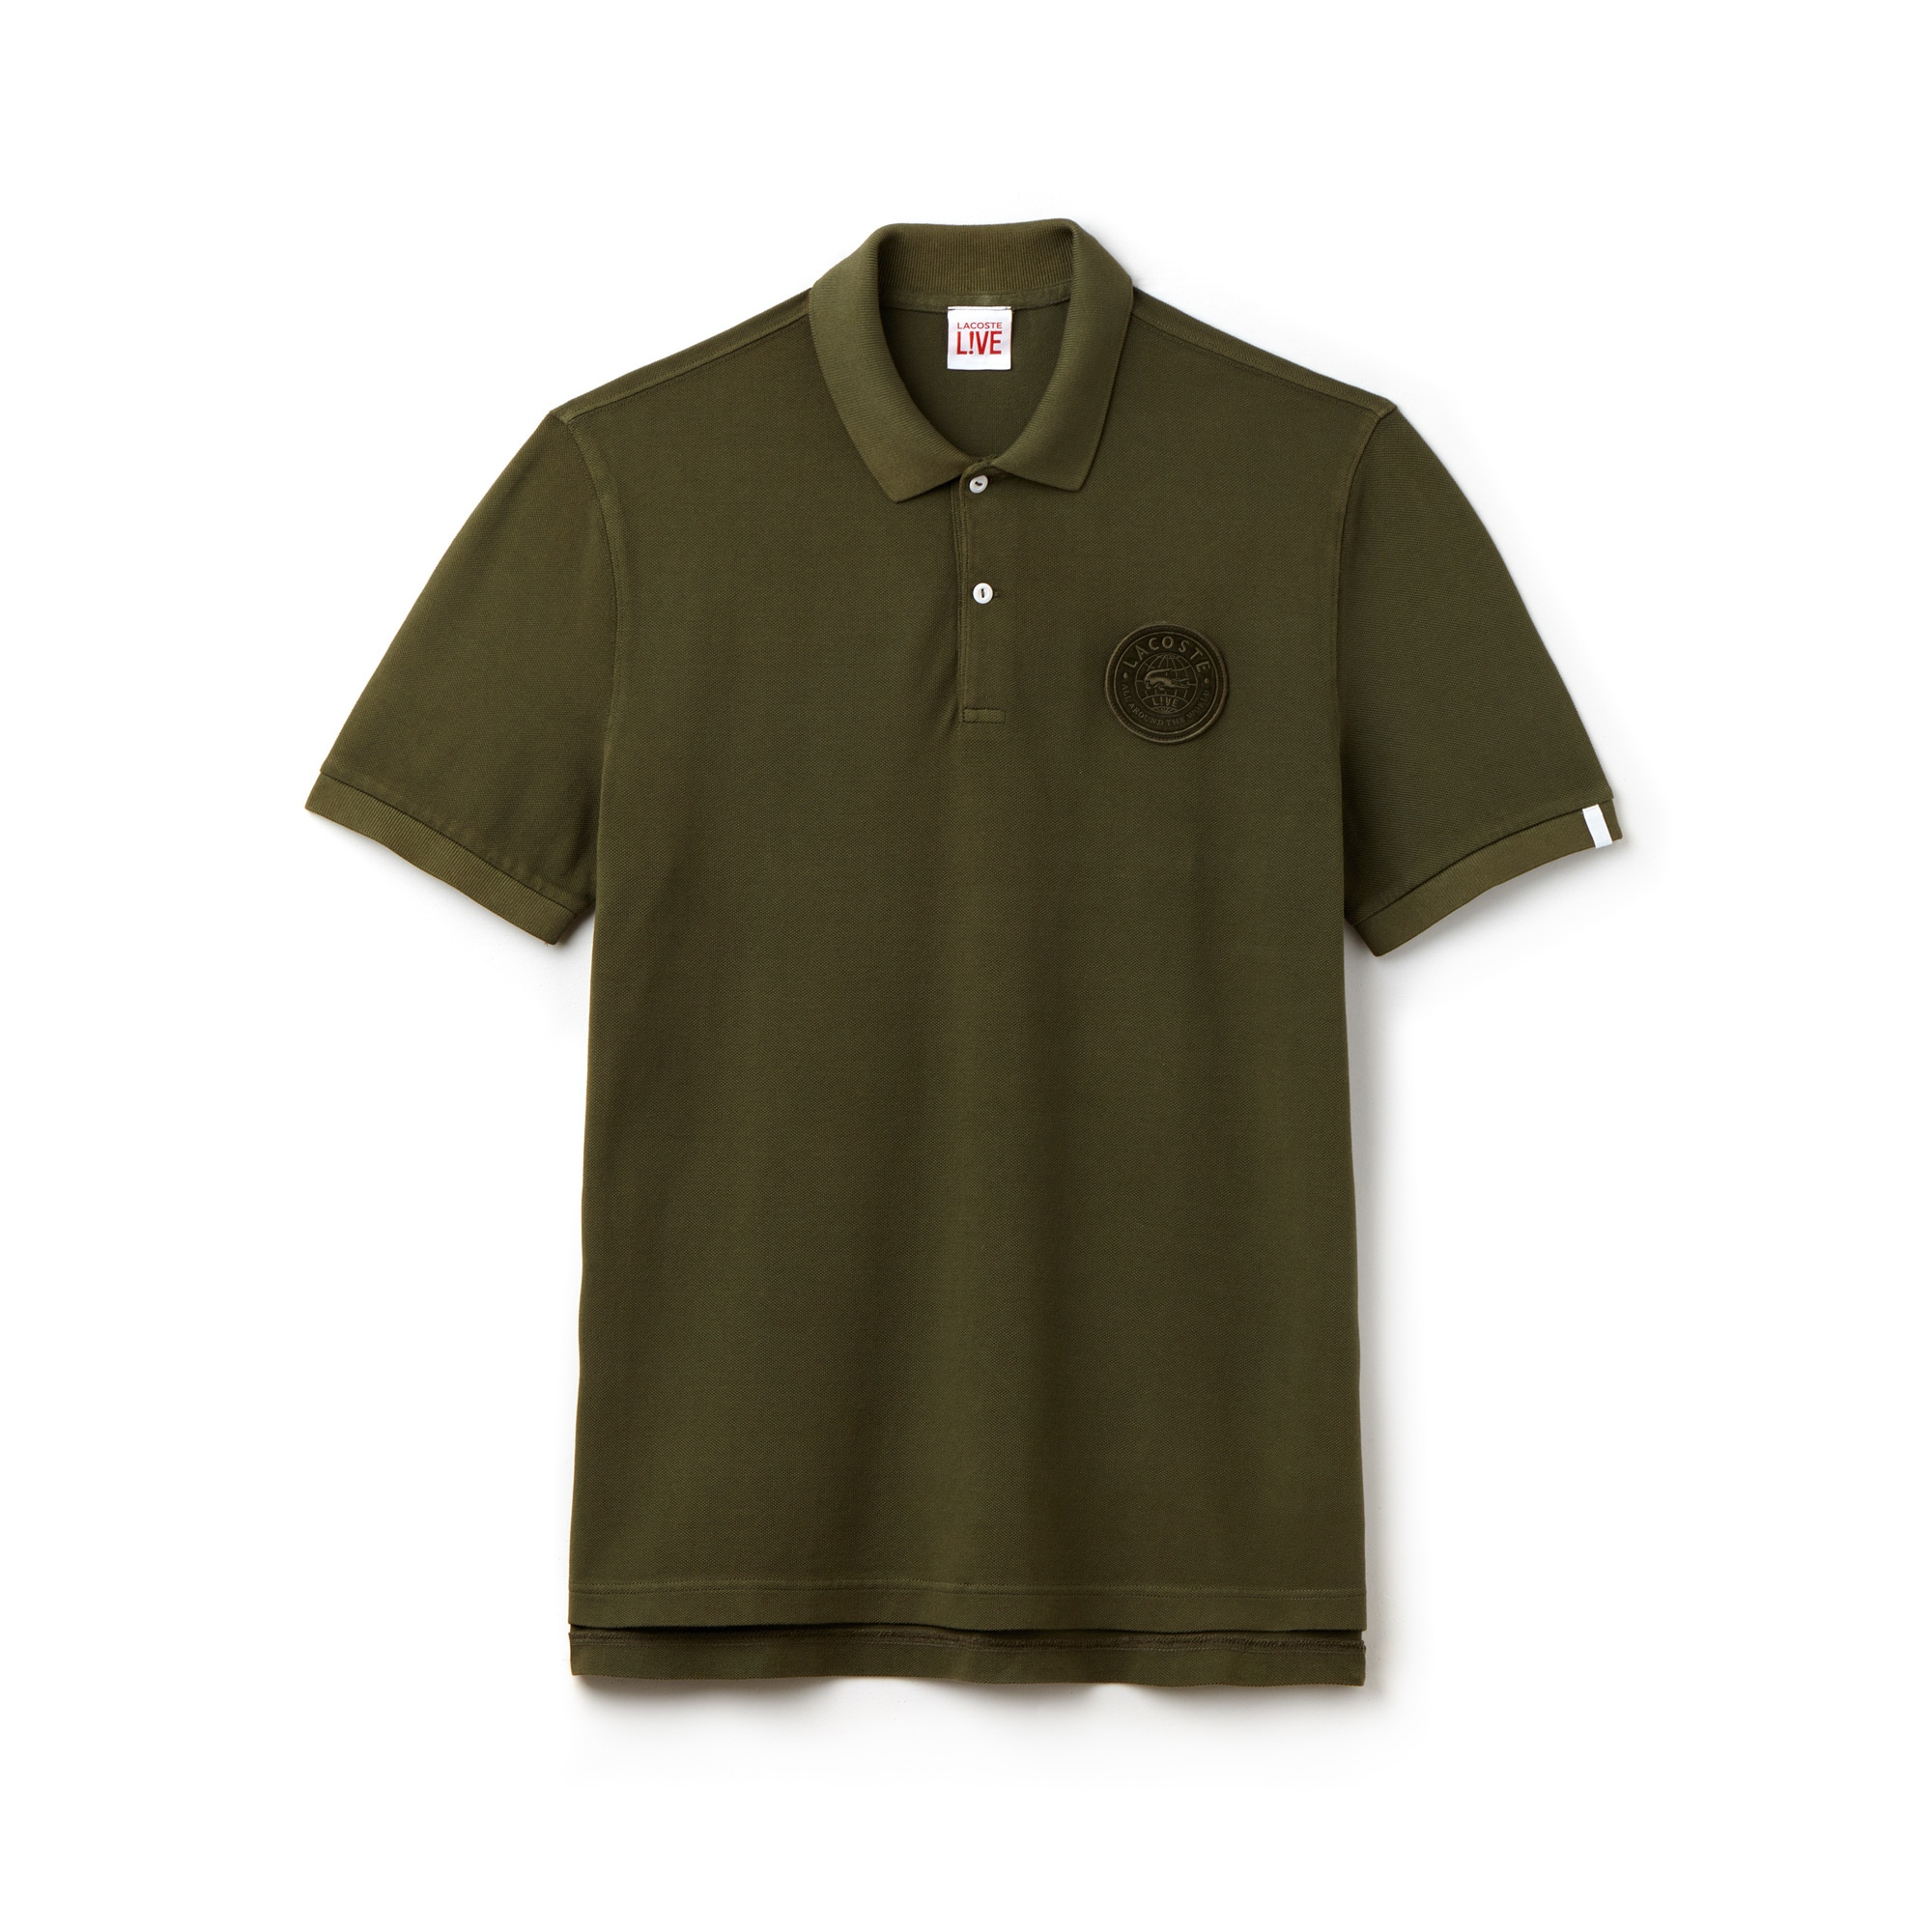 Men's Lacoste LIVE Regular Fit Faded Petit Piqué Polo Shirt With Badge